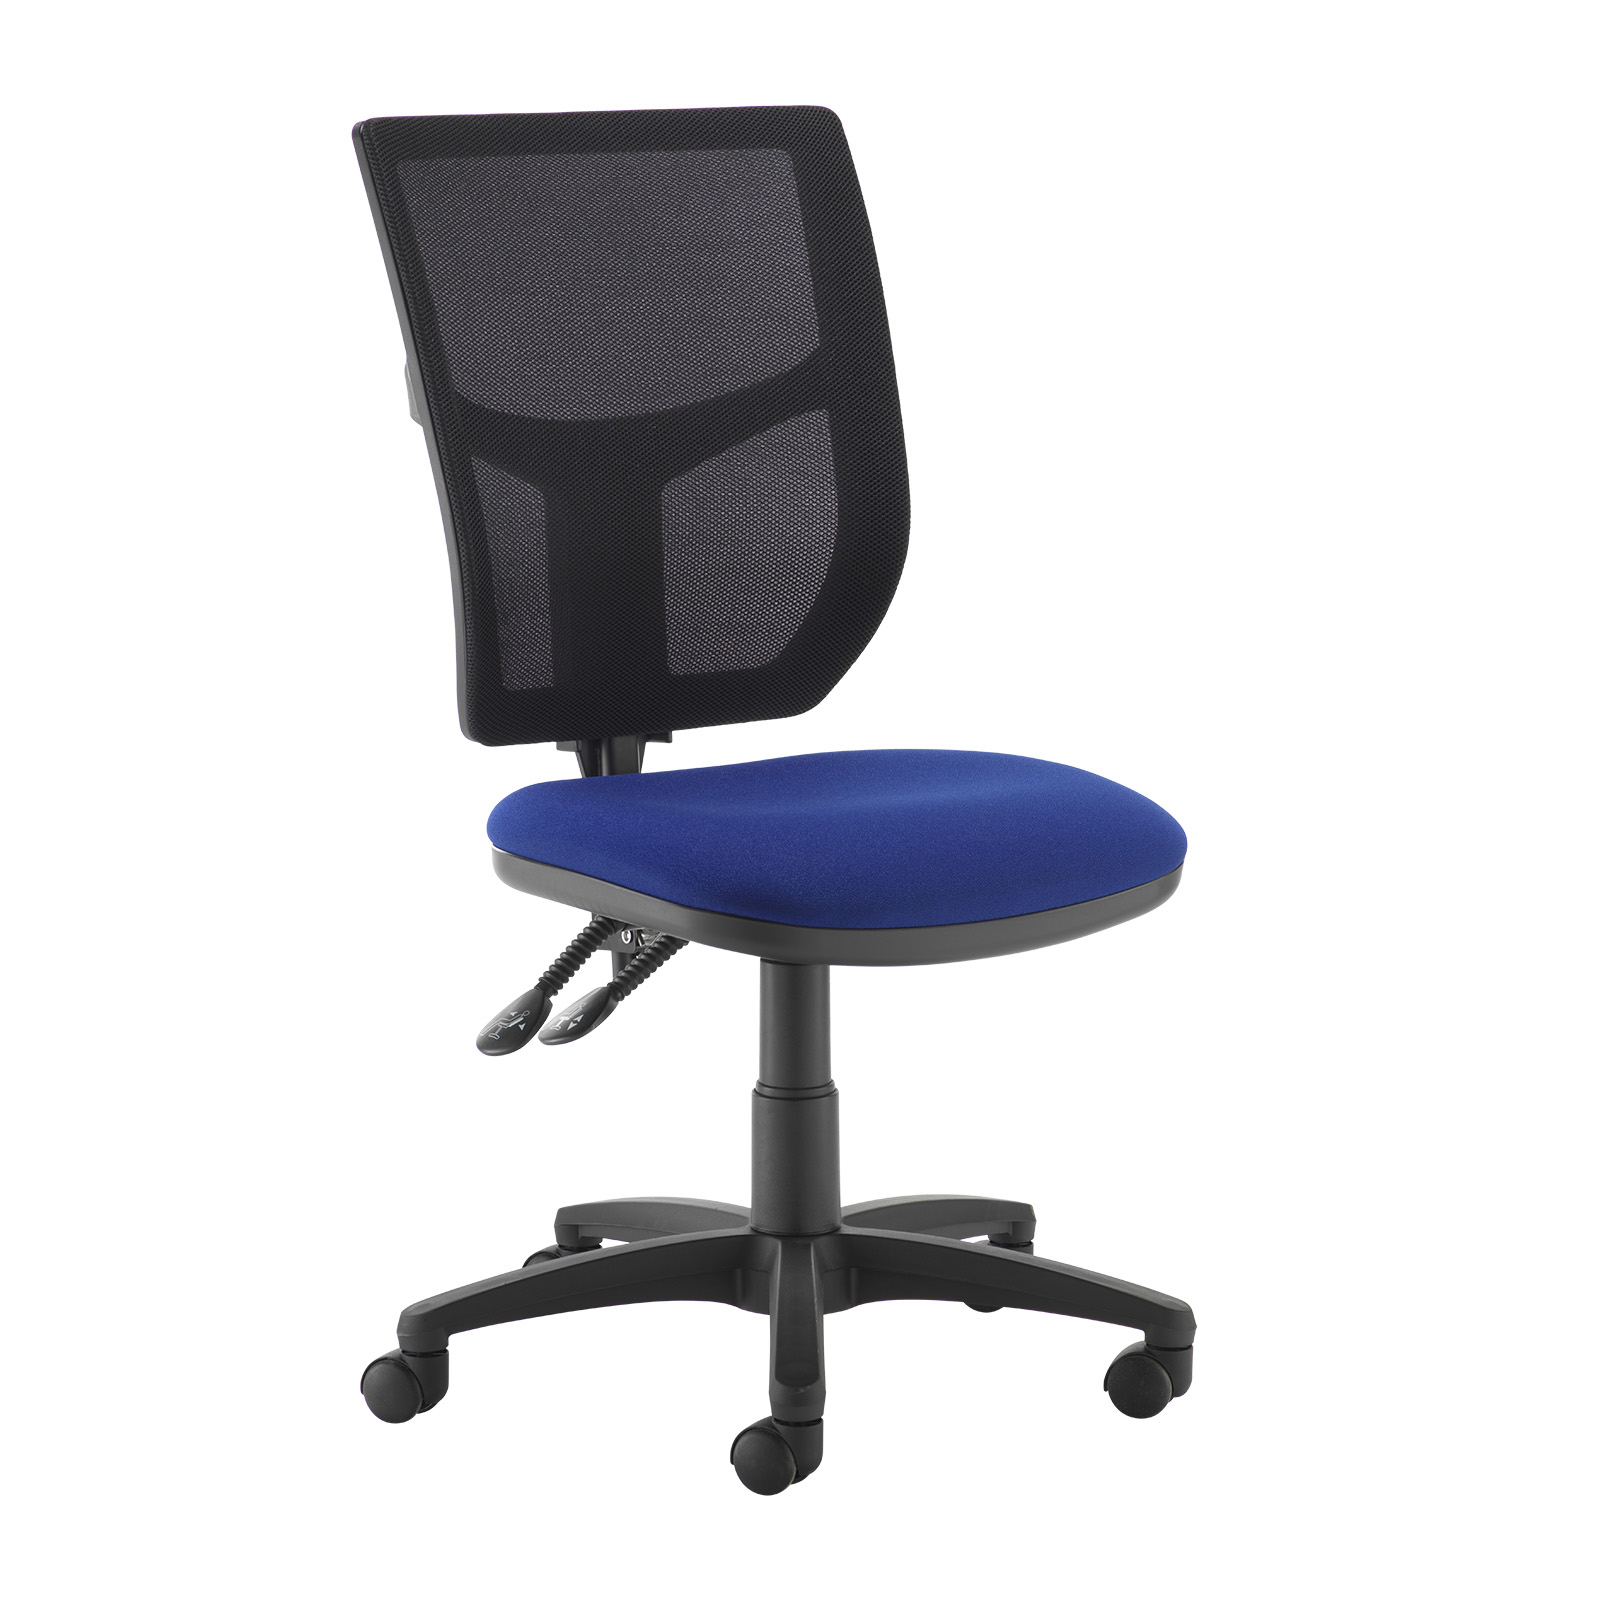 Desk Chairs Altino 2 lever high mesh back operators chair with no arms - blue